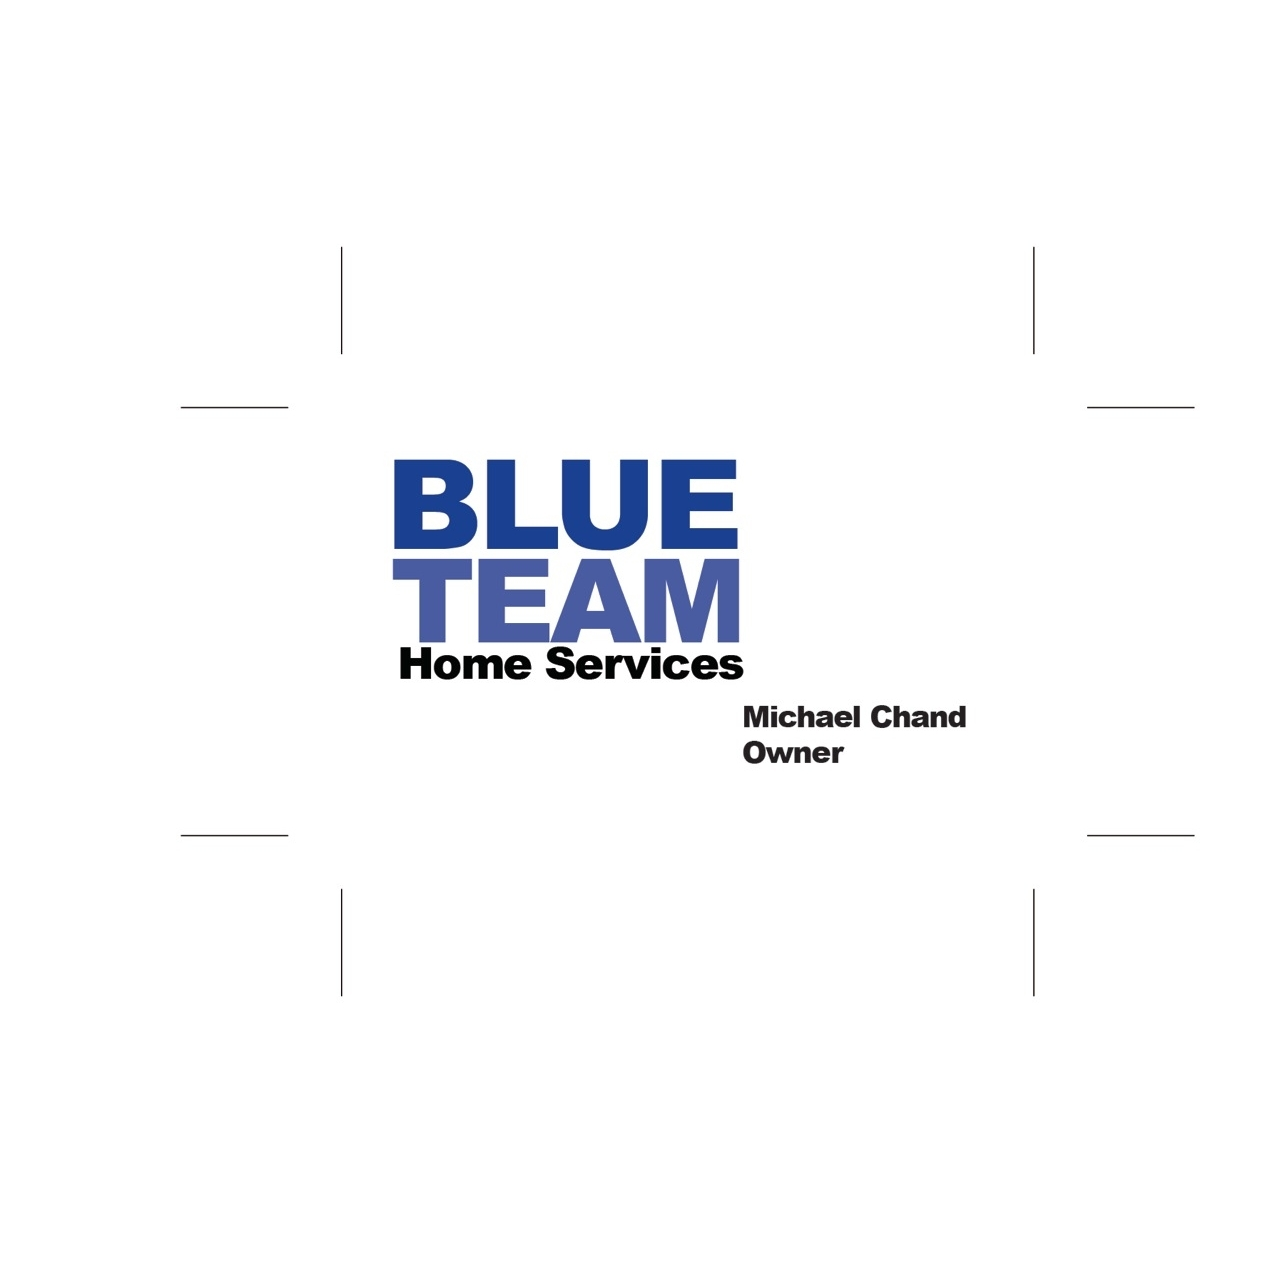 image of the Blue Team  Carpet & Air Duct Cleaning